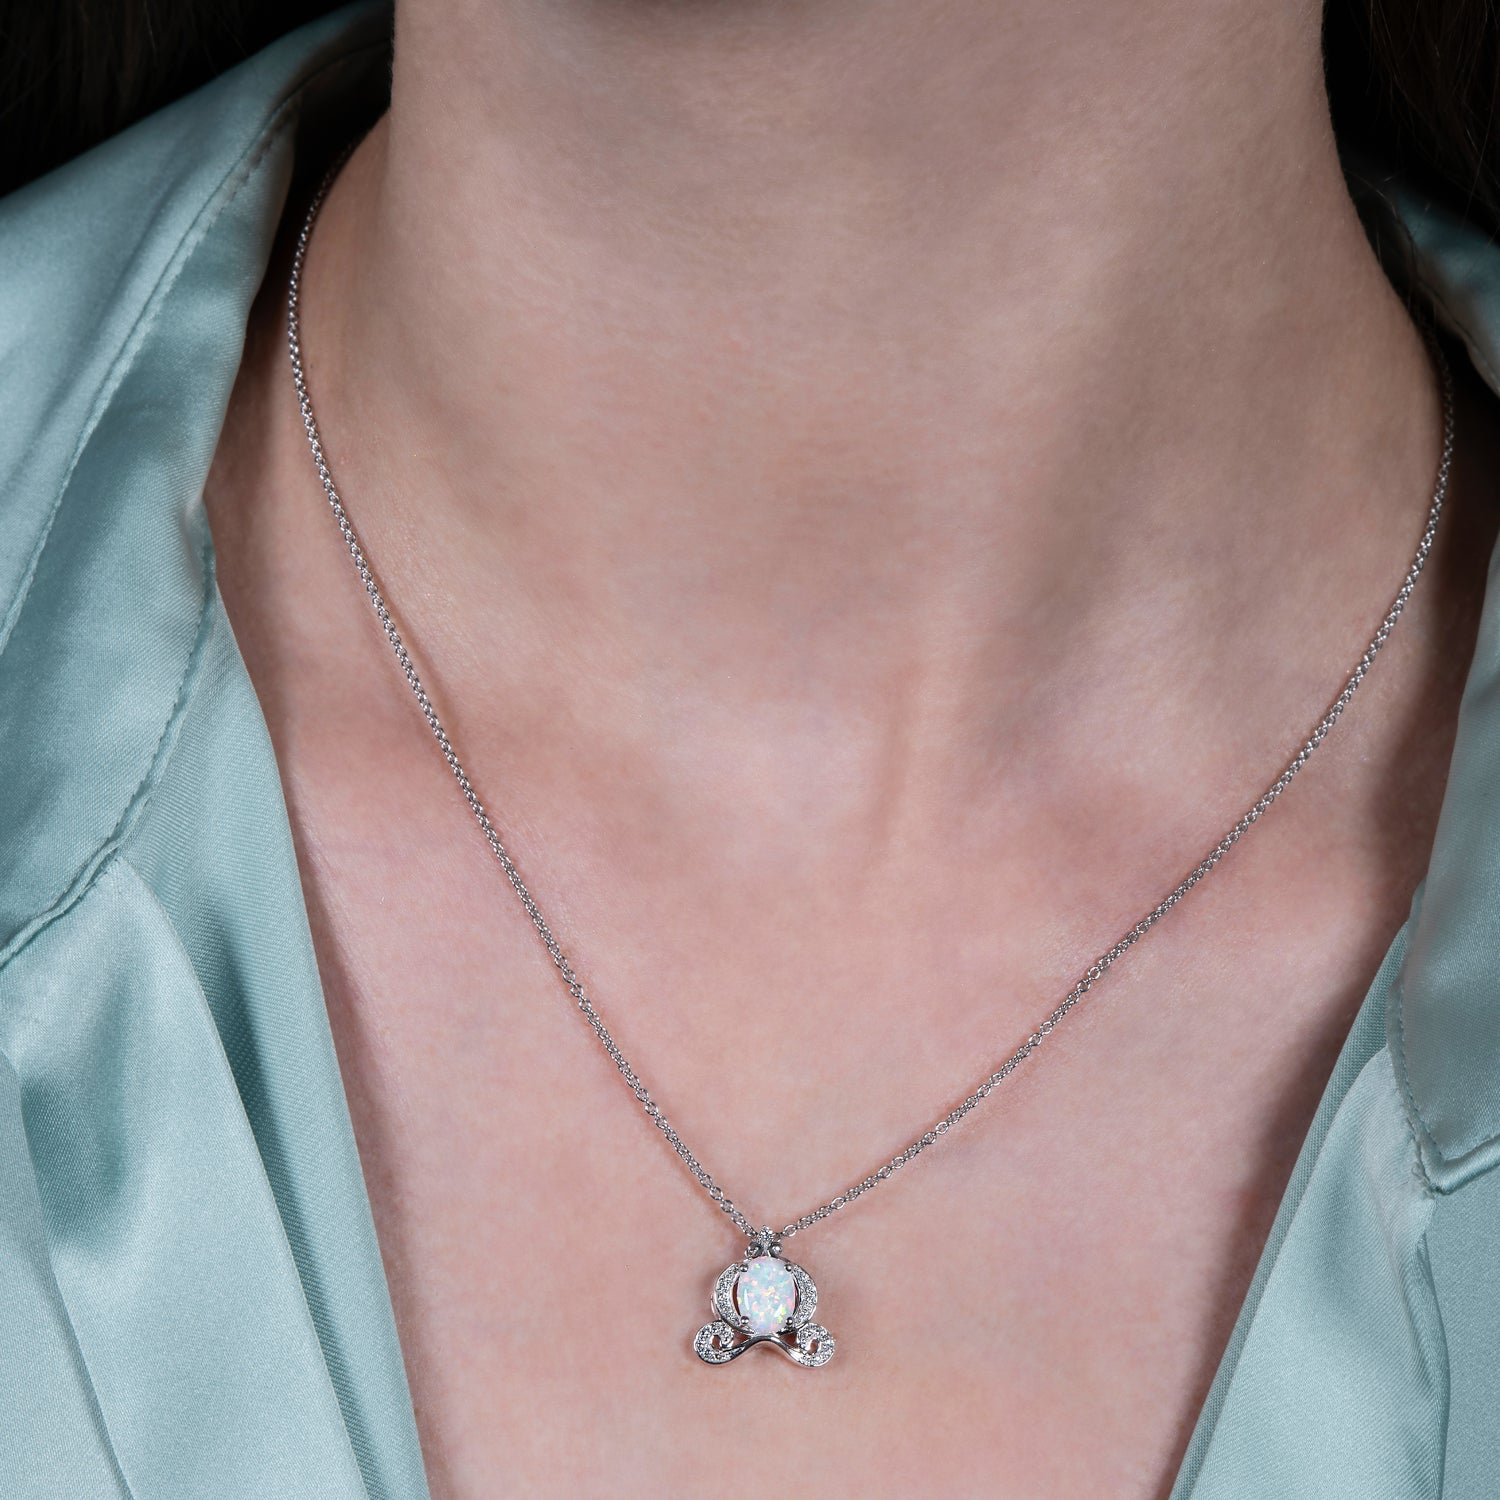 enchanted_disney-cinderella_lab_created_multicolored_opal_pendant-sterling_silver_1/10CTTW_1